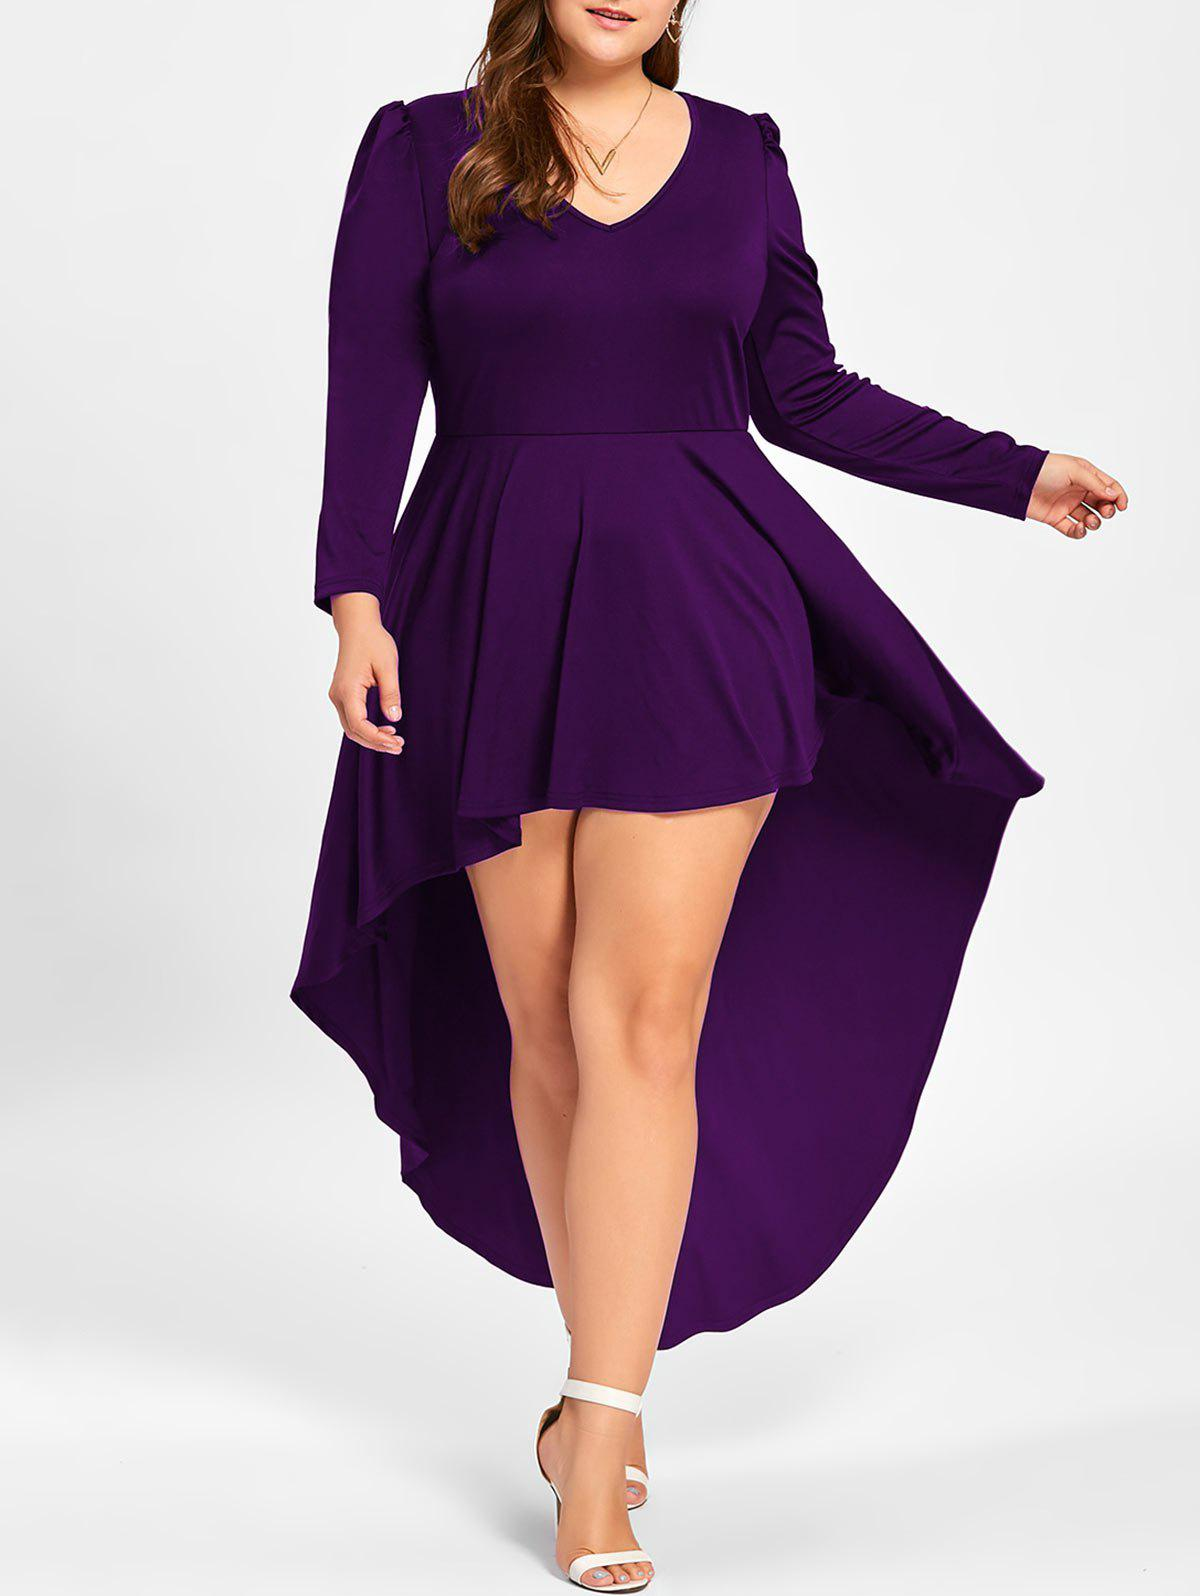 a5e0e7aae984 39% OFF   2019 Plus Size Long Sleeve Cocktail Dress